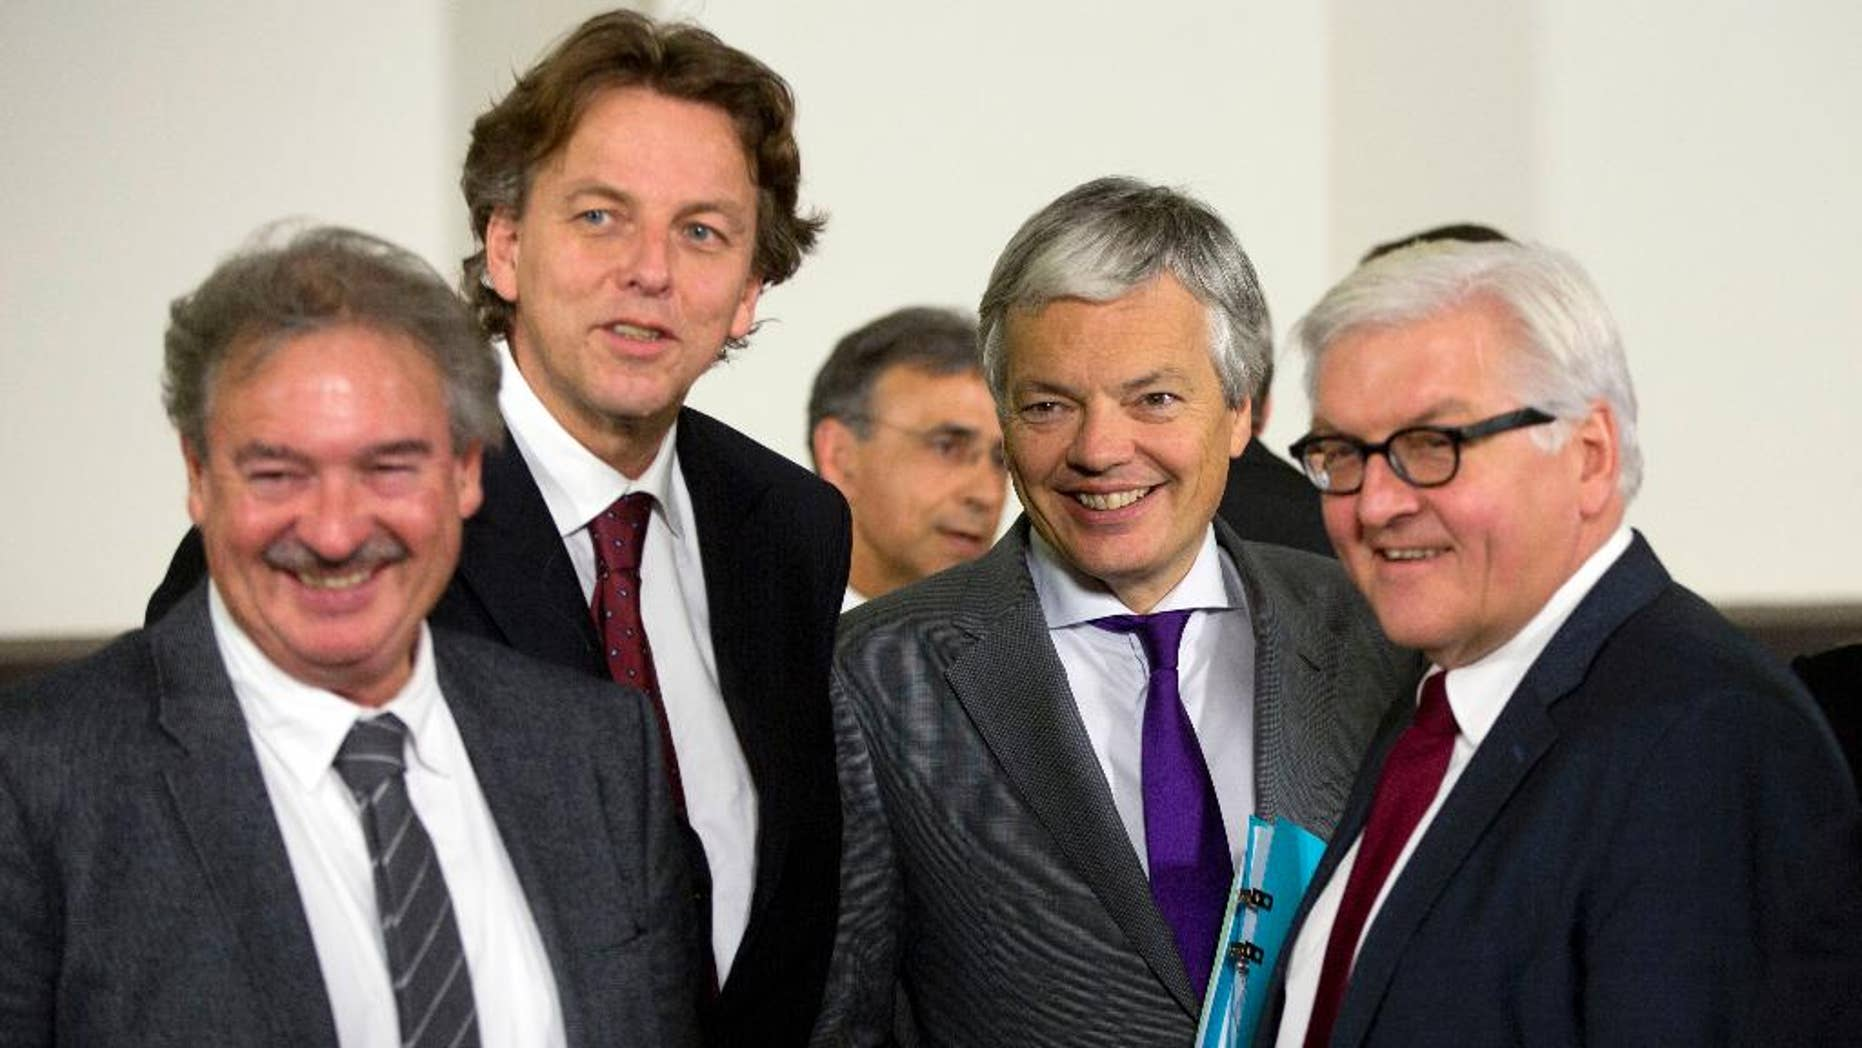 From left, Luxembourg's Foreign Minister Jean Asselborn, Dutch Foreign Minister Bert Koenders, Belgian Foreign Minister Didier Reynders and German Foreign Minister Frank-Walter Steinmeier pose during a group photo at NATO headquarters in Brussels on Tuesday, Dec. 2, 2014. NATO's chief says alliance foreign ministers are poised to make a number of key decisions, including the shift to a non-combat role for NATO-led forces in Afghanistan beginning Jan. 1. 2015. (AP Photo/Virginia Mayo)